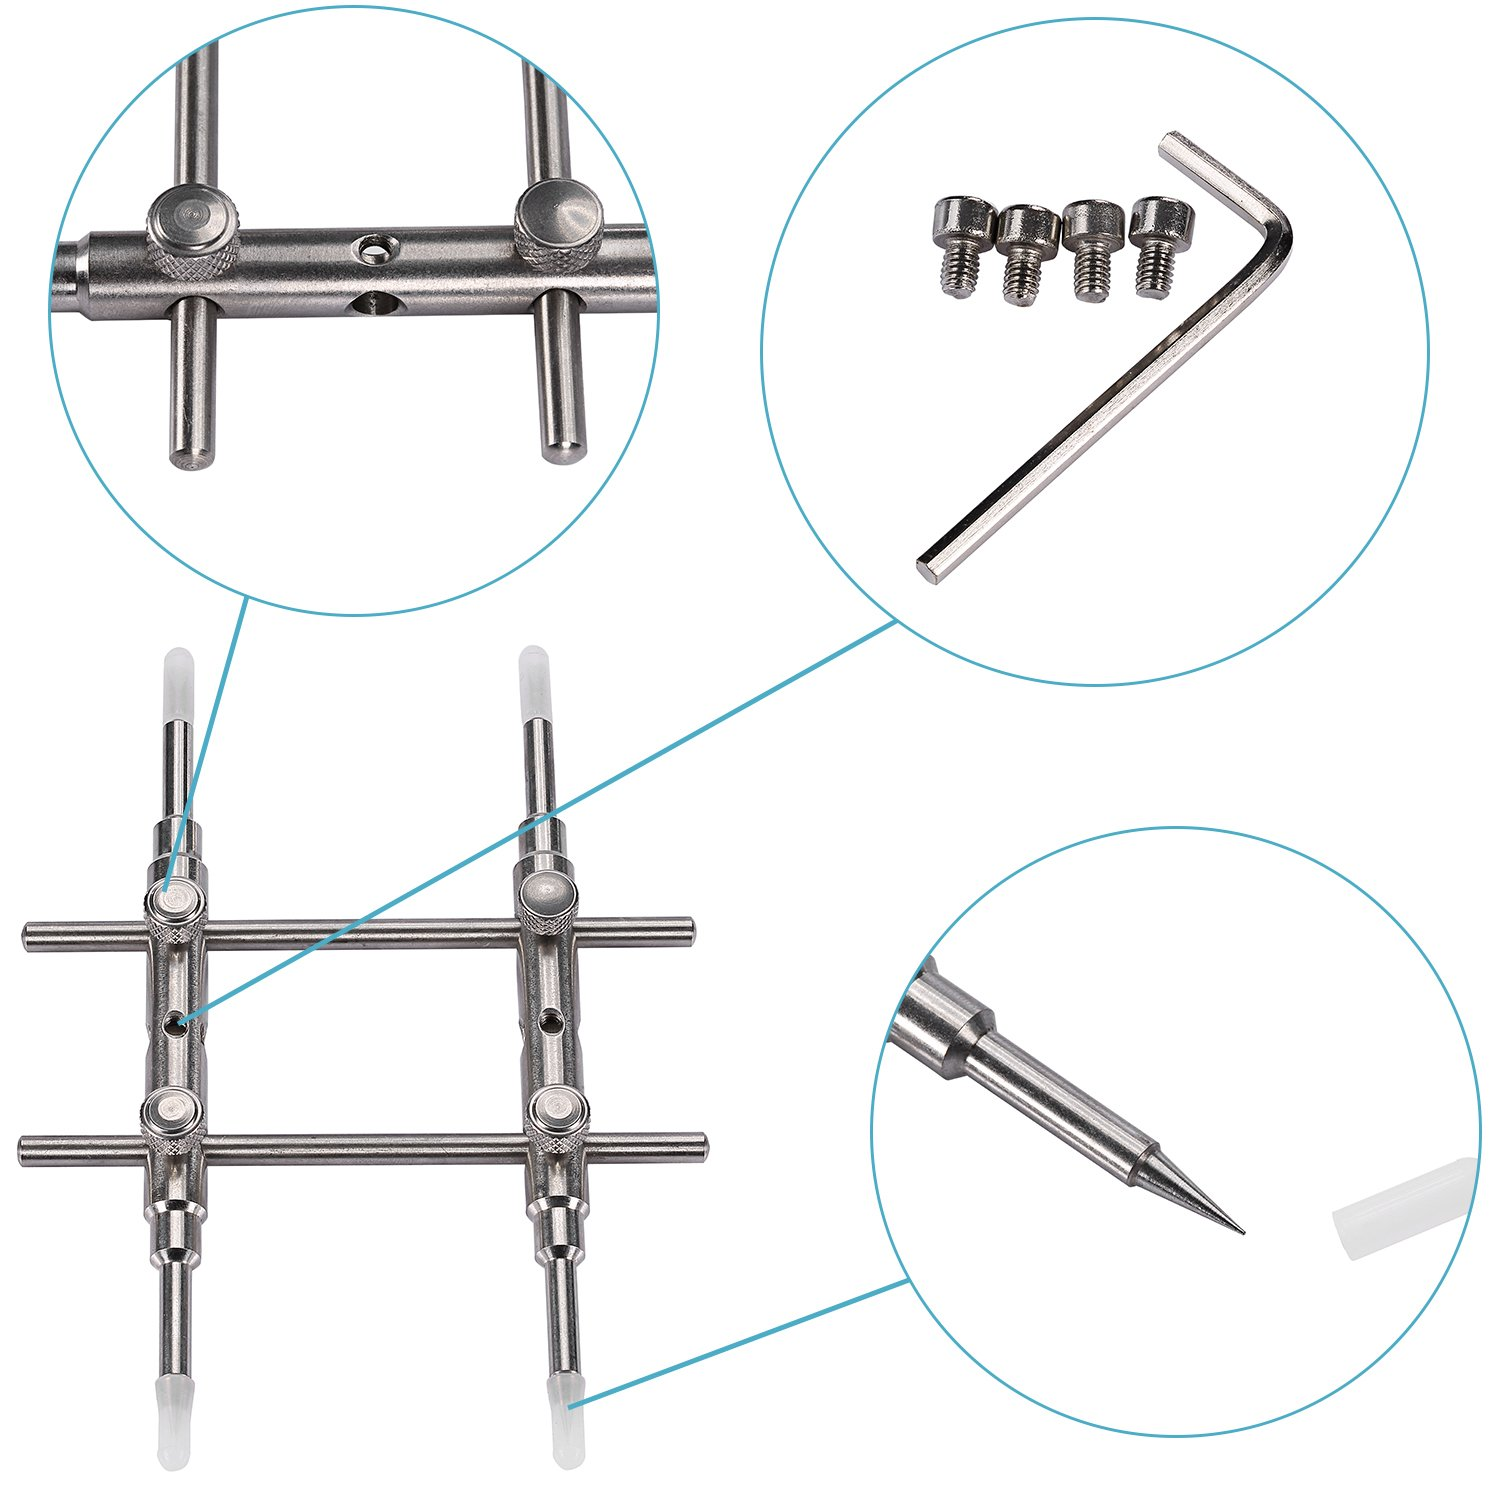 Neewer Professional Flat & pointed Tips DSLR Camera Lens Spanner Wrench Repairing Opening Tool for Most Cameras